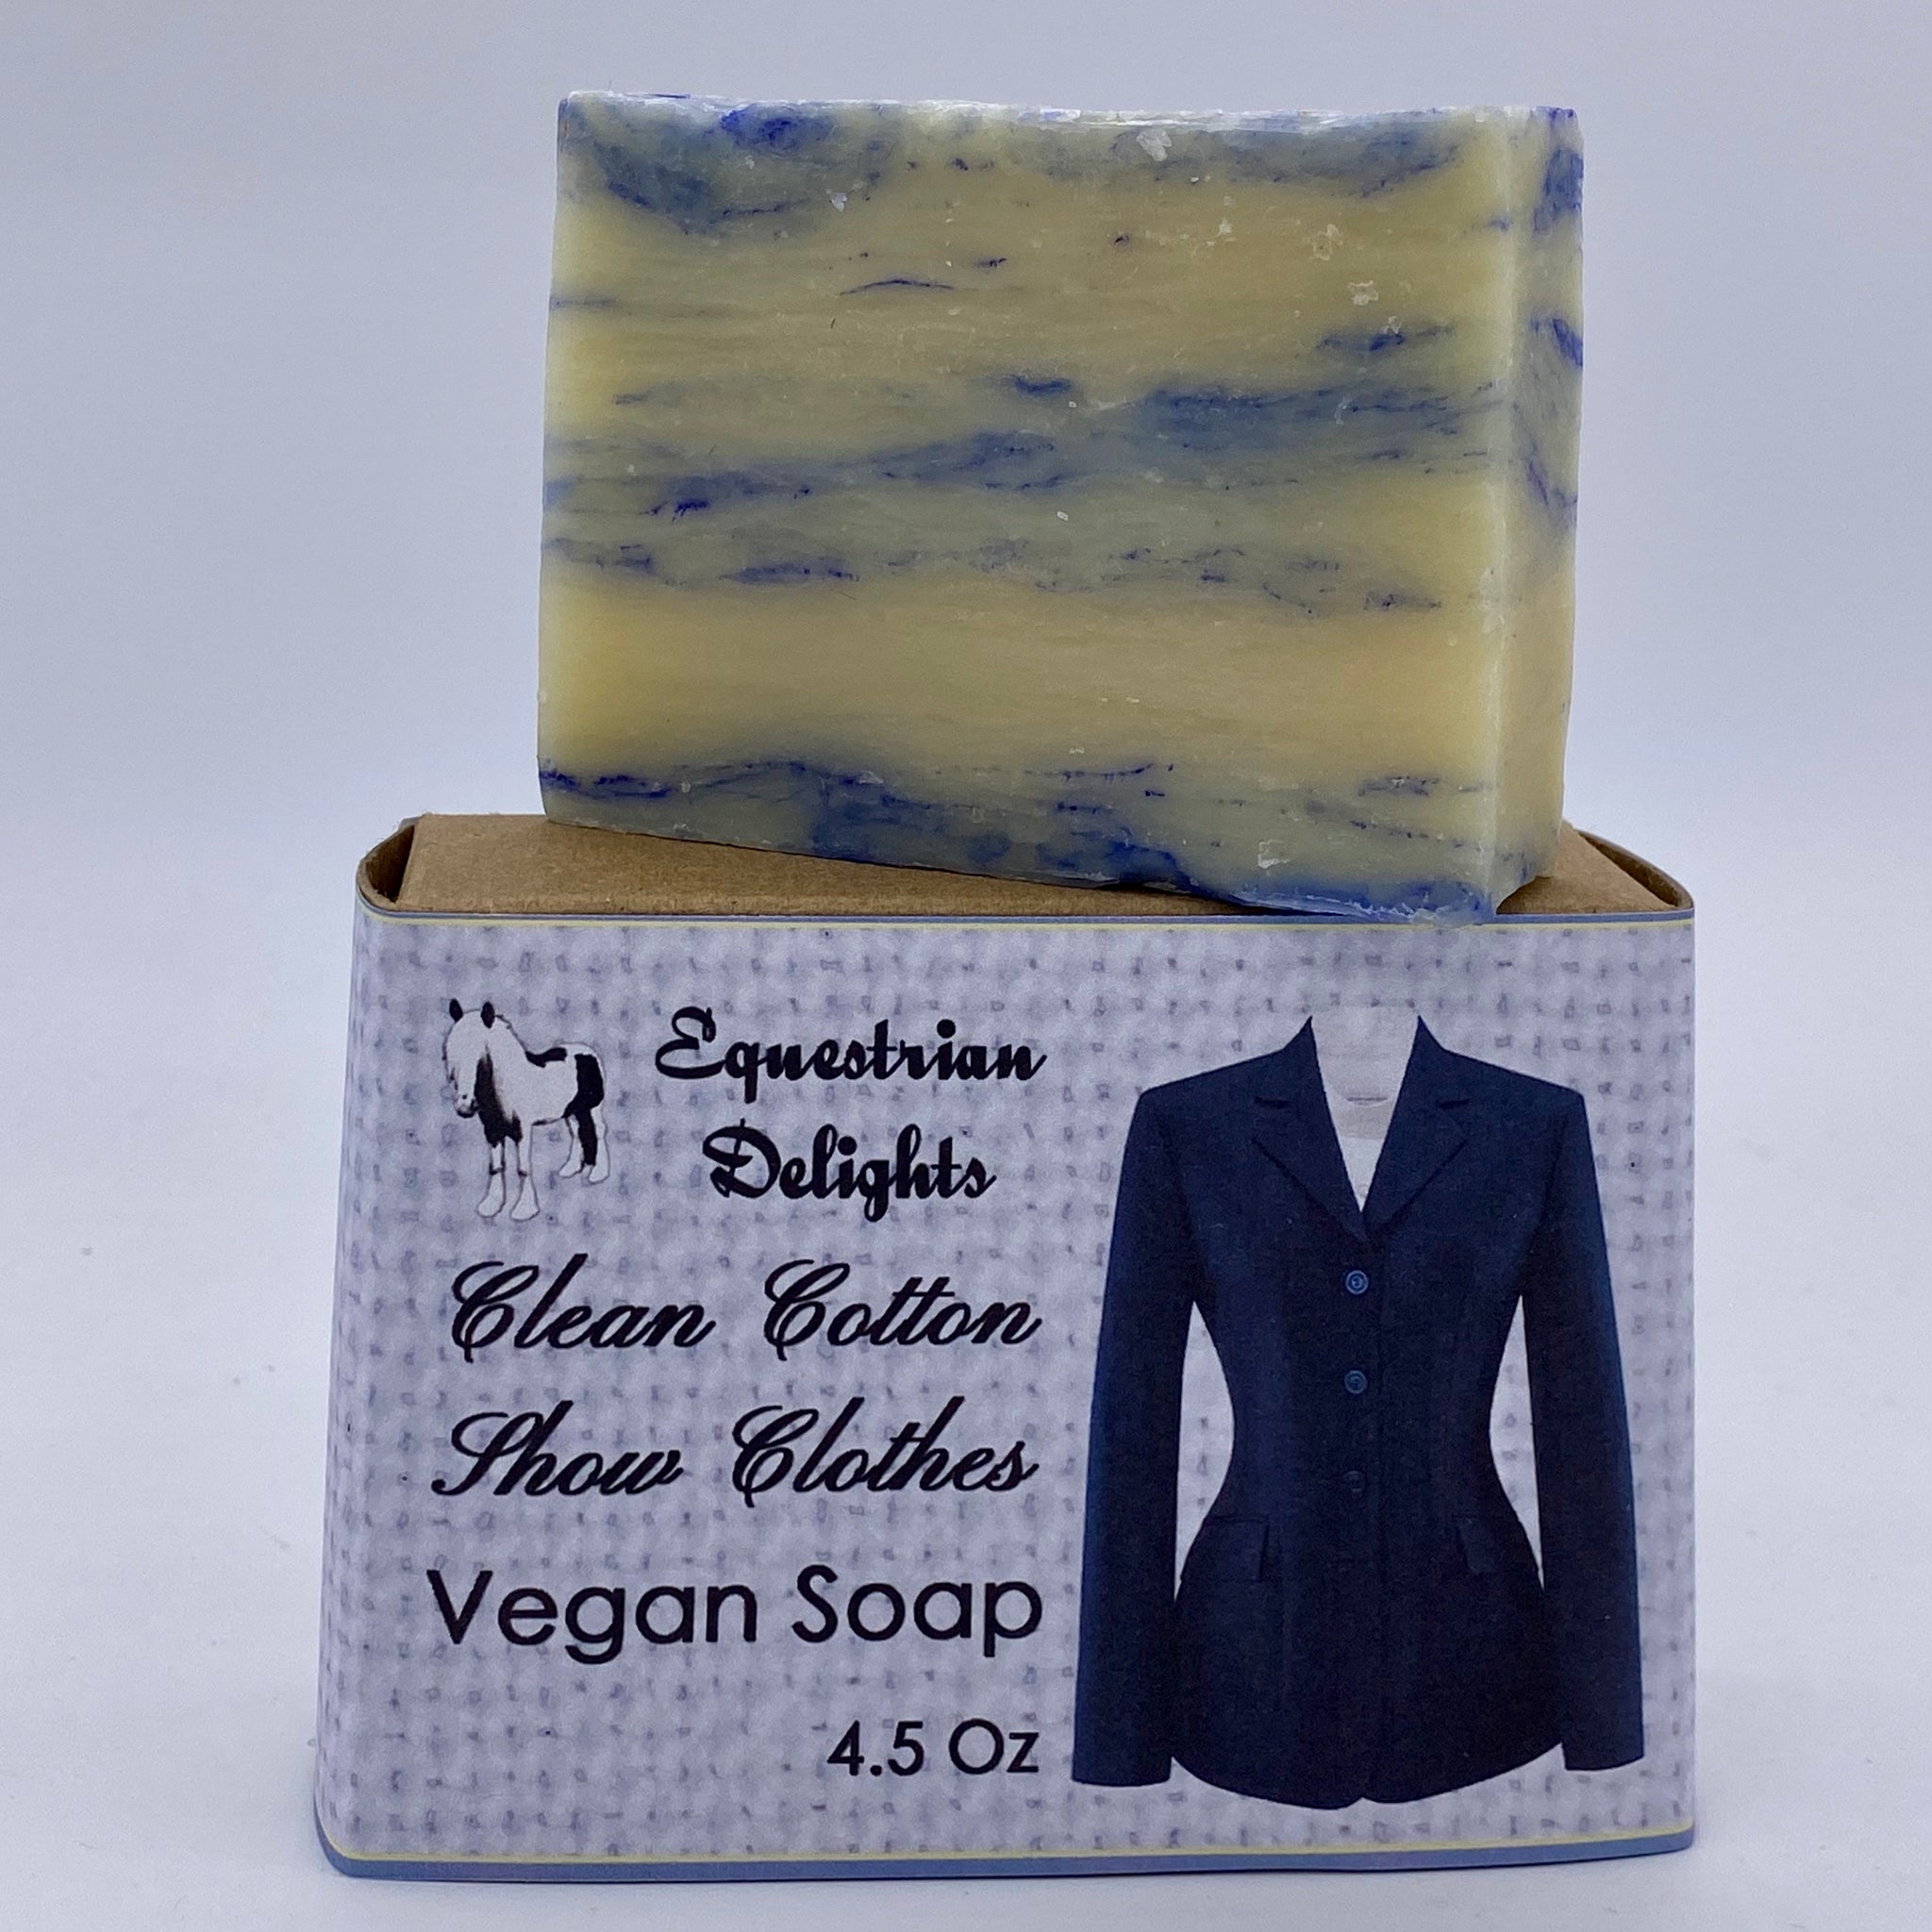 Ratcatcher Cotton Scented Vegan Soap Bar, Equestrian Gifts Under 10